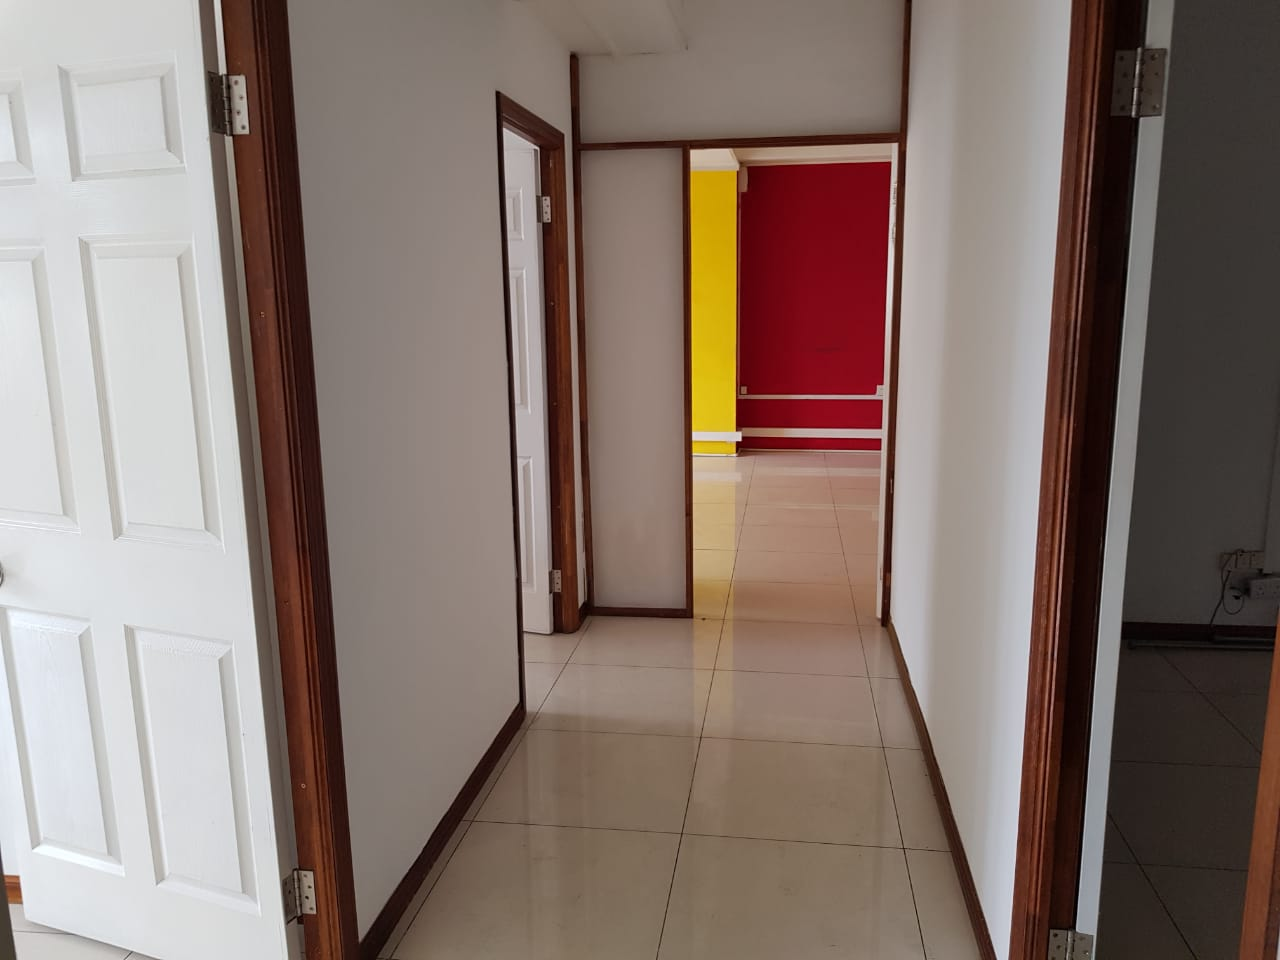 Office spaces for sale on the first and second floor of Immeuble Vendome, Port Louis